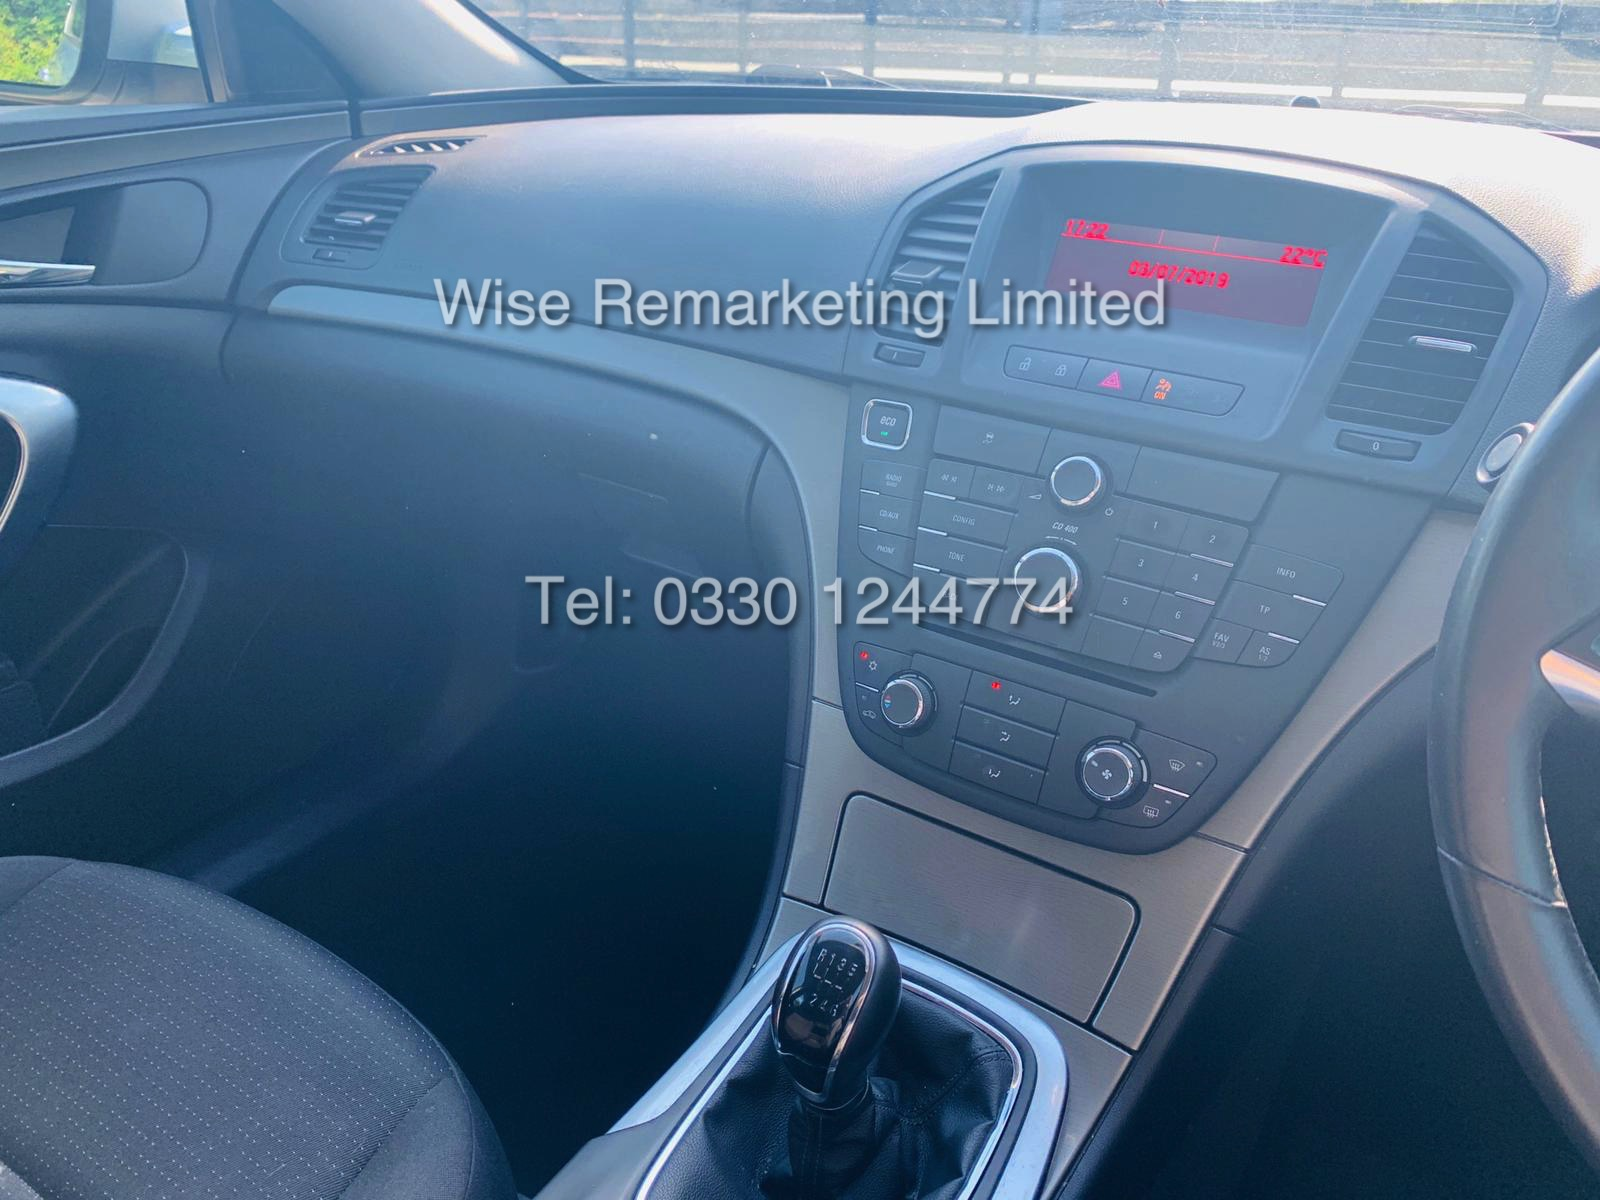 VAUXHALL INSIGNIA 2.0 CDTI ECOFLEX ES 2013 *FSH* 1 OWNER FROM NEW - Image 17 of 30